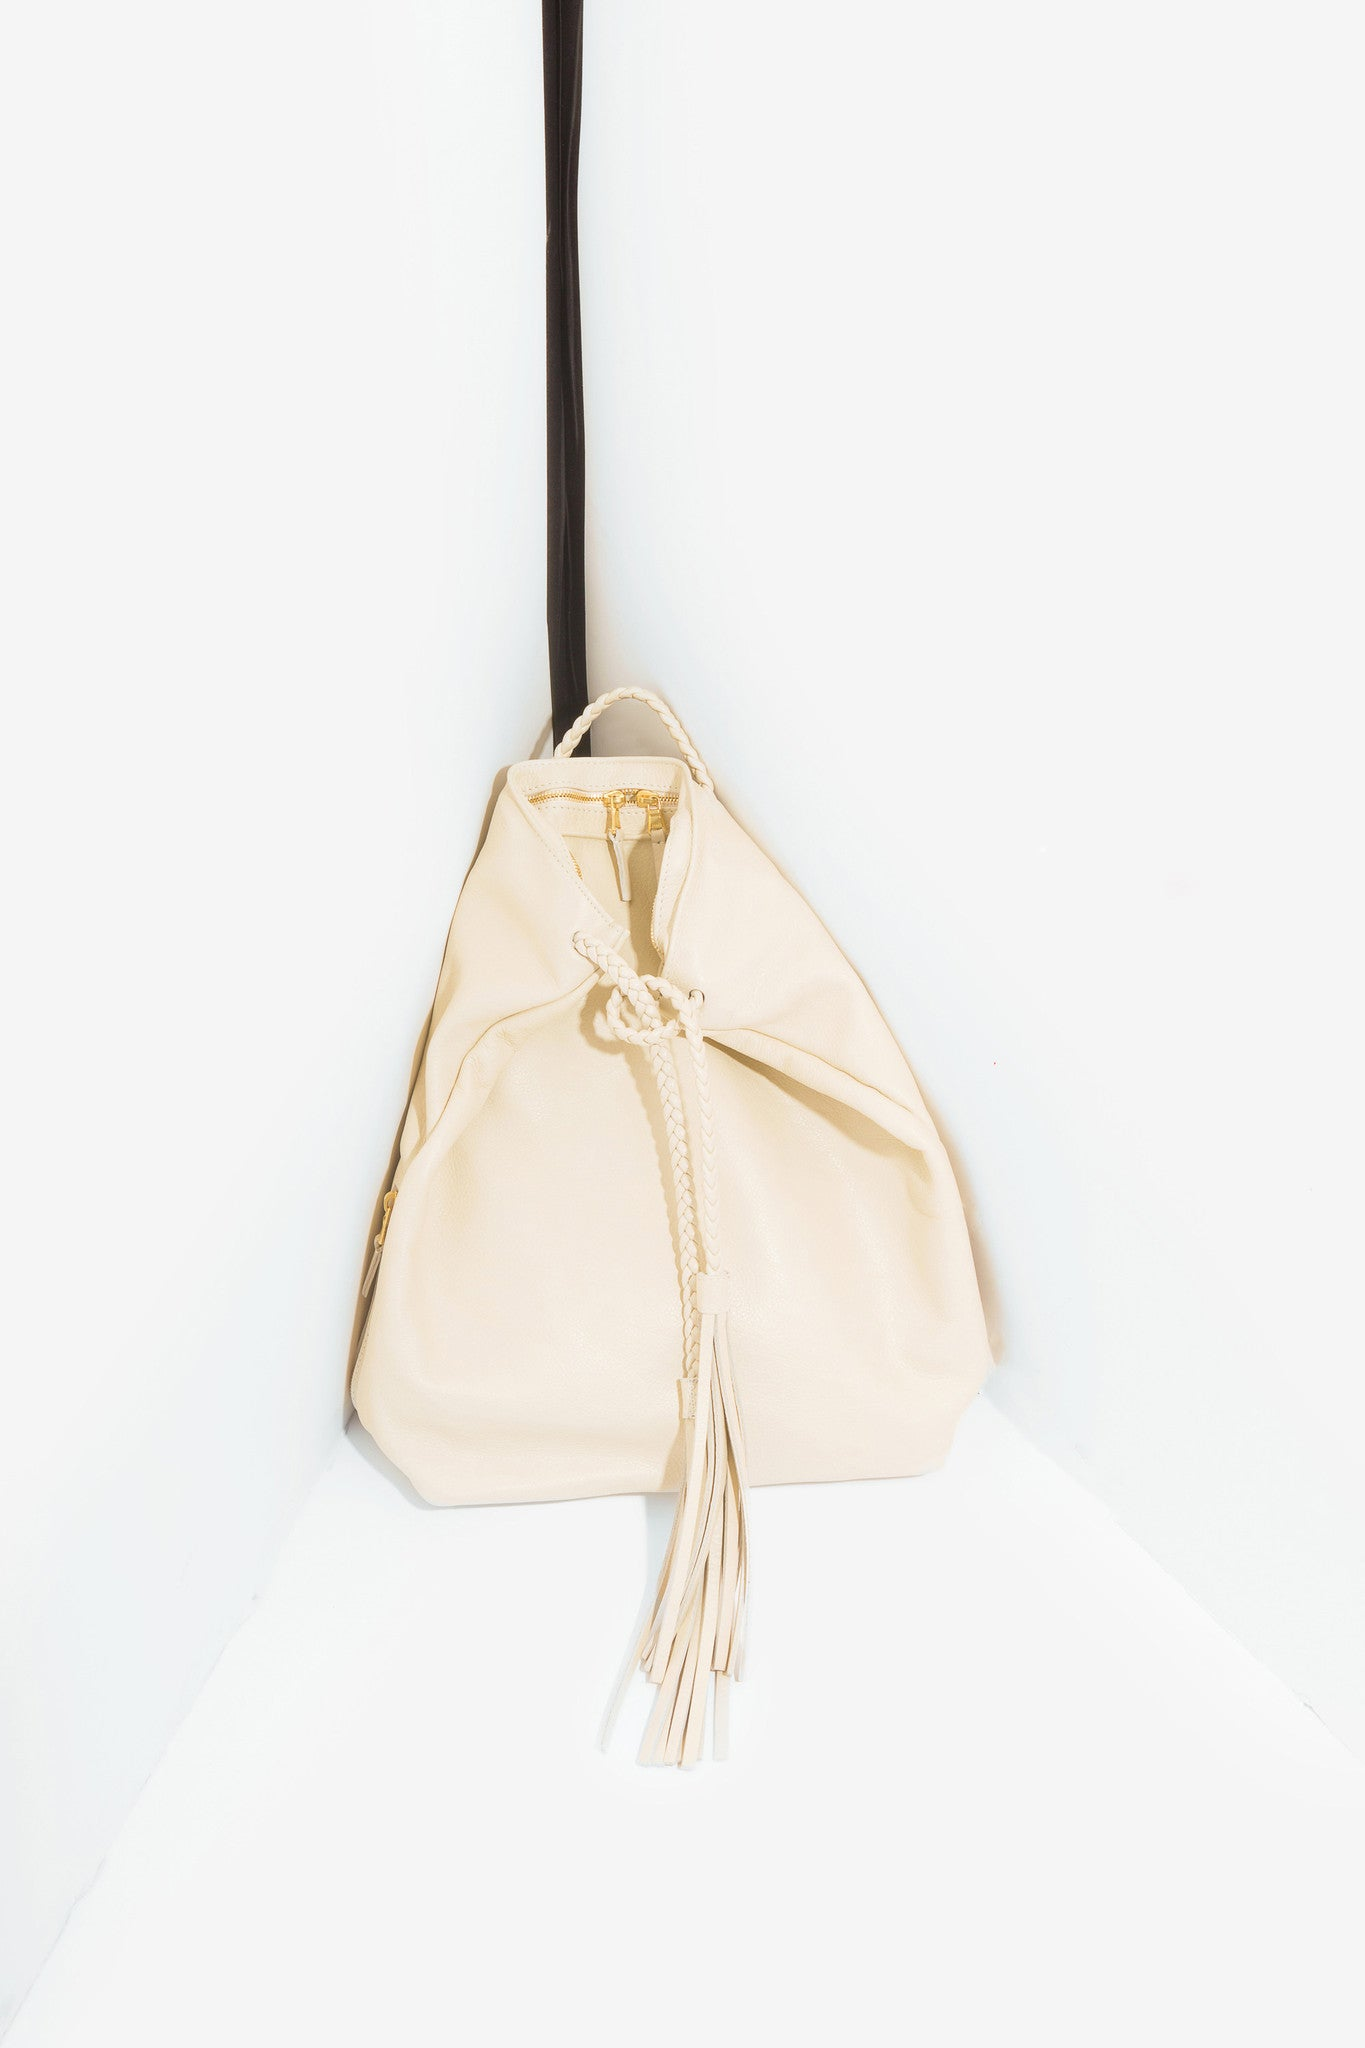 Tassel Backpack is a cream leather backpack with tassel with braided straps and leather tassels designed by Moses Nadel.